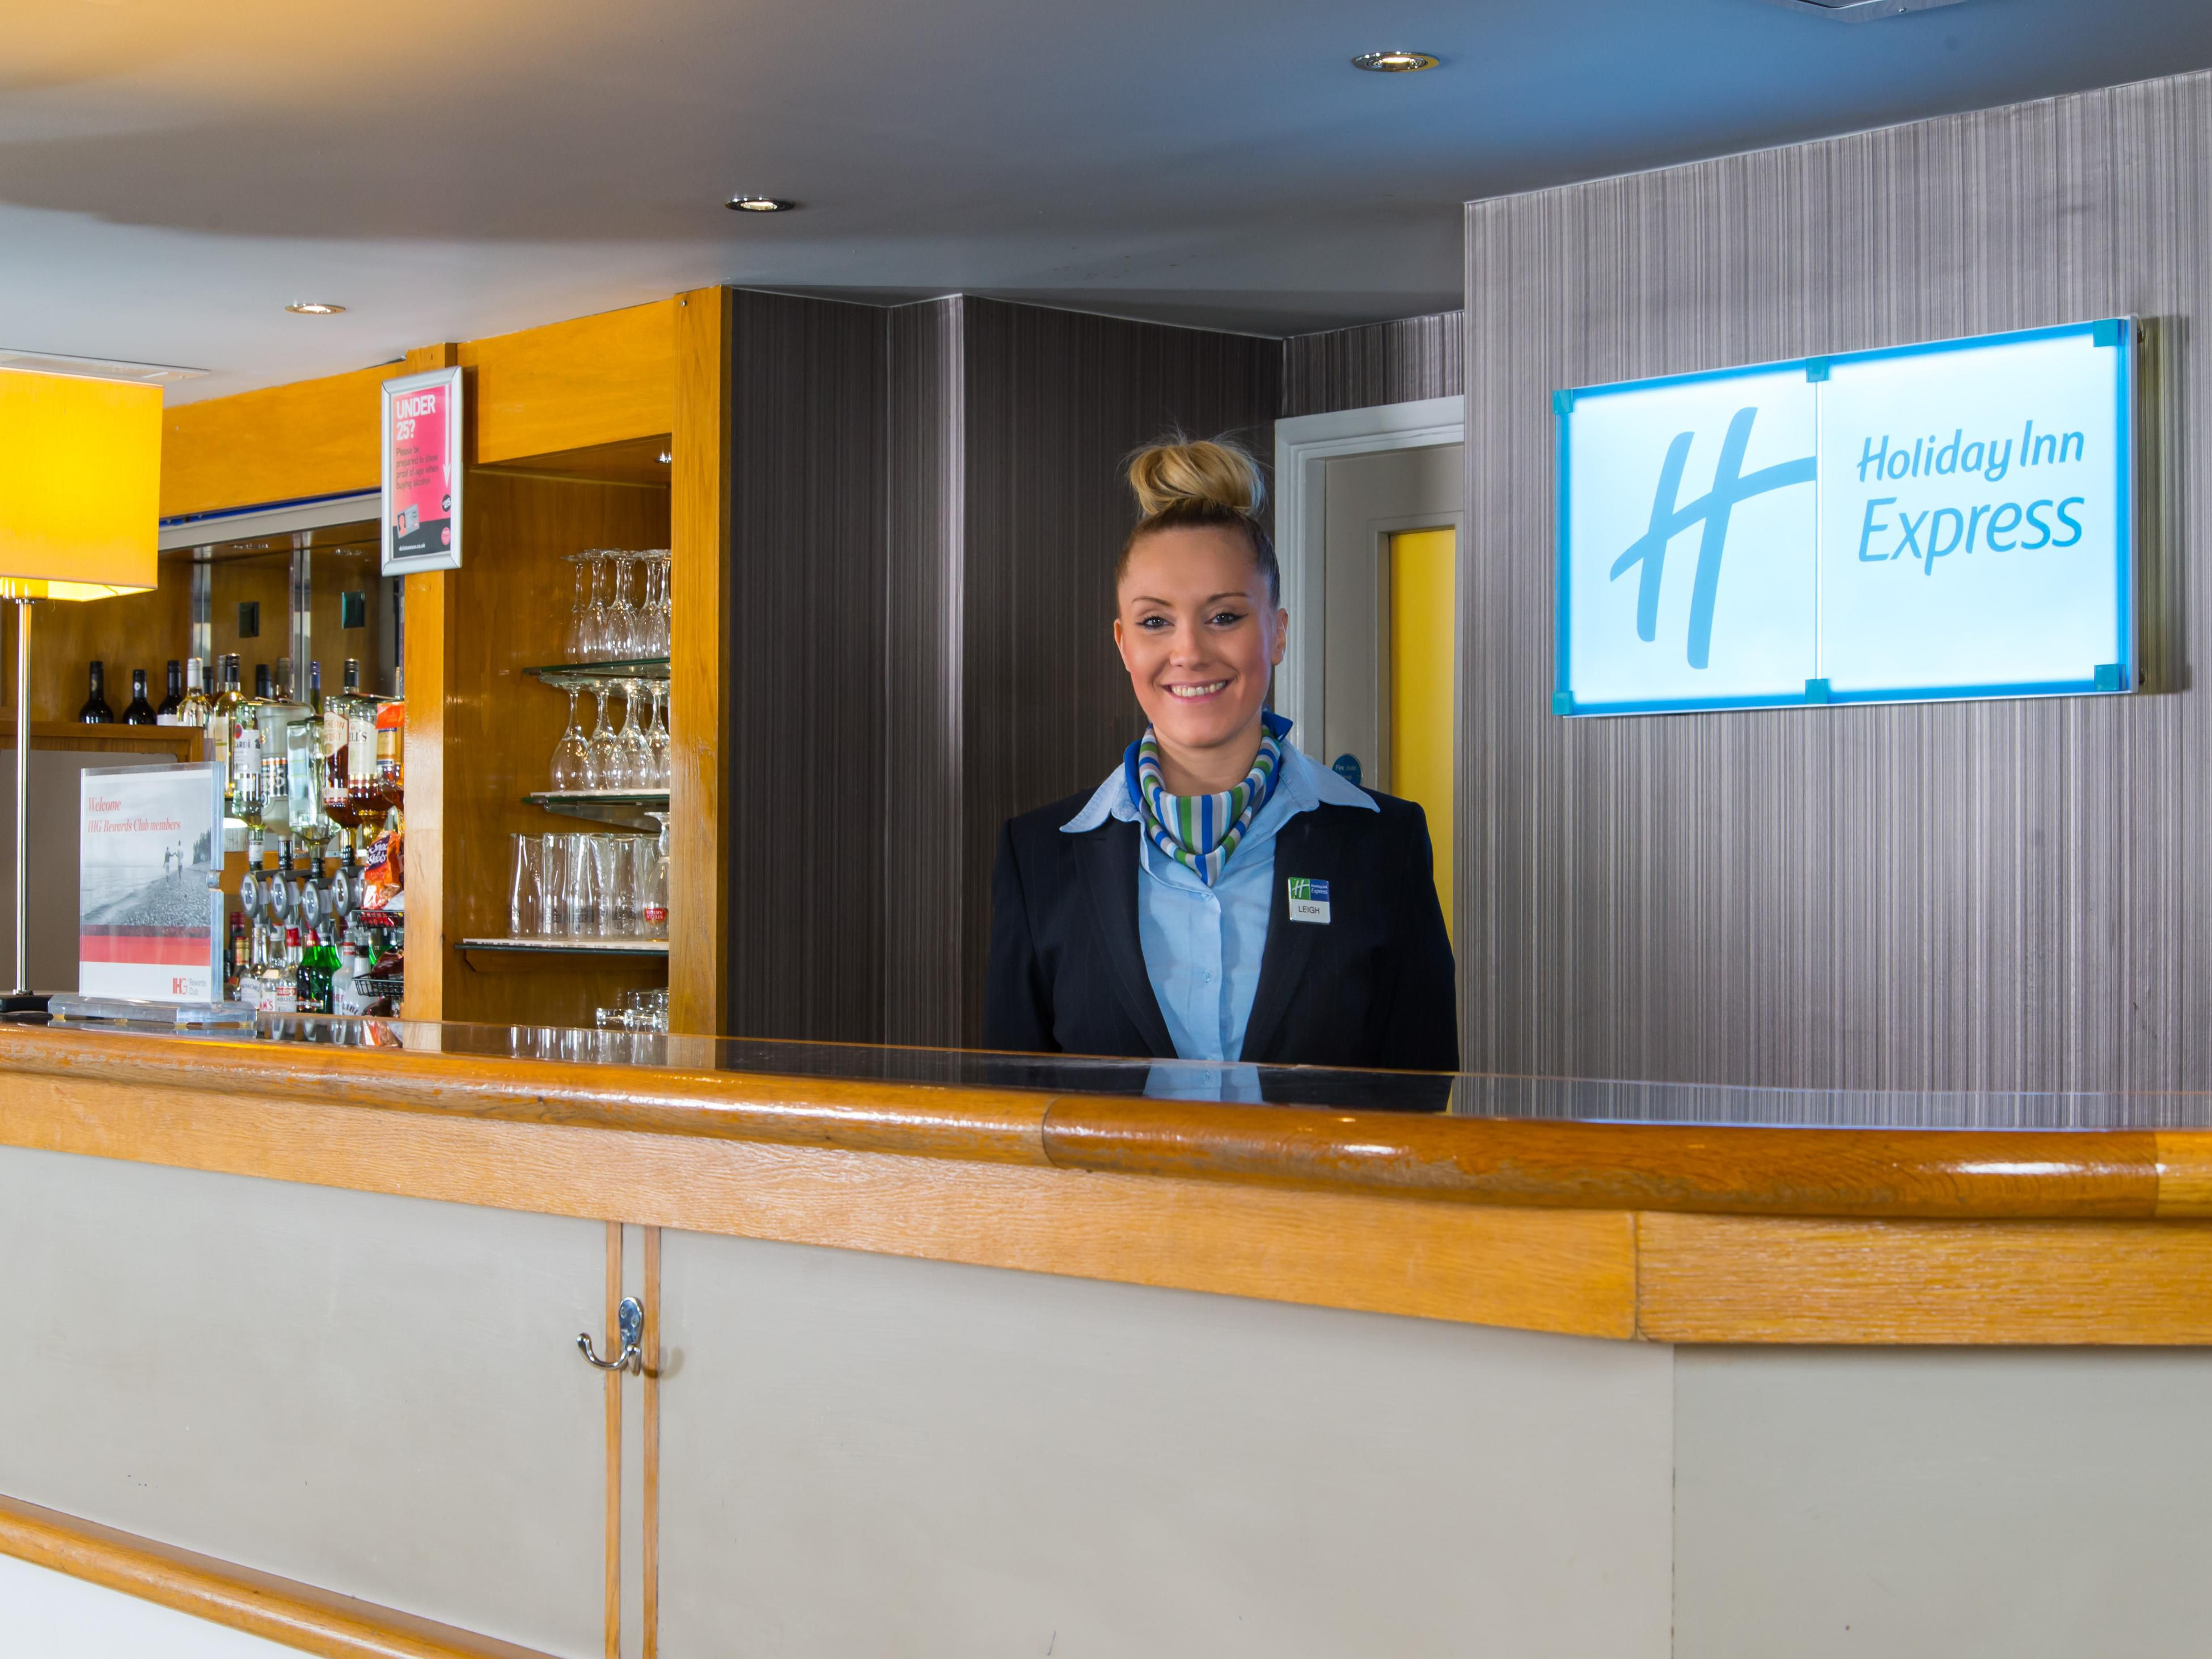 Our friendly Reception team are always here for anything you need